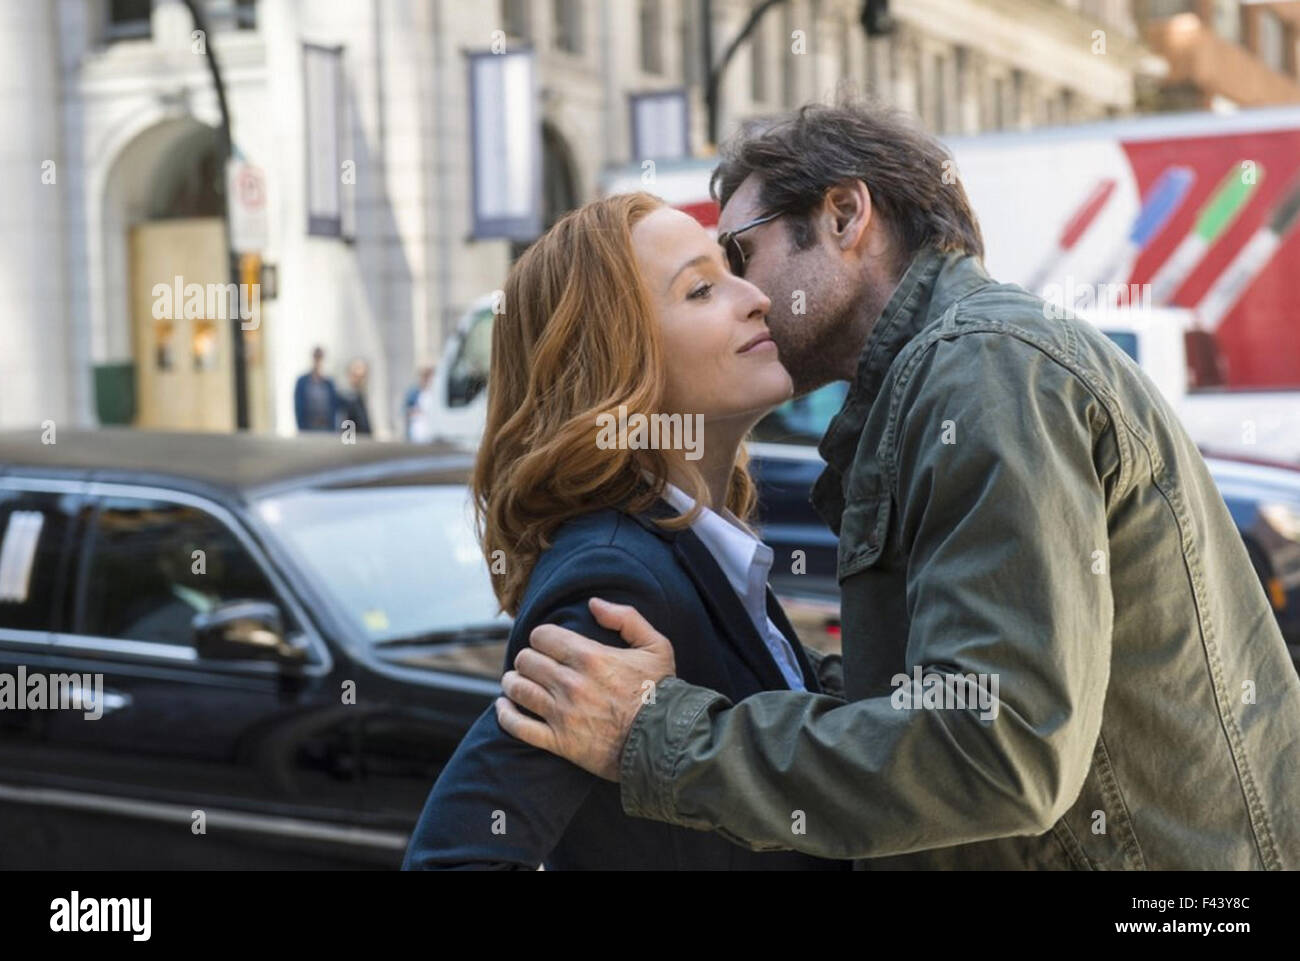 THE X-FILES 2016 Fox Broadcasting film with Gillian Anderson and David Duchovny - Stock Image